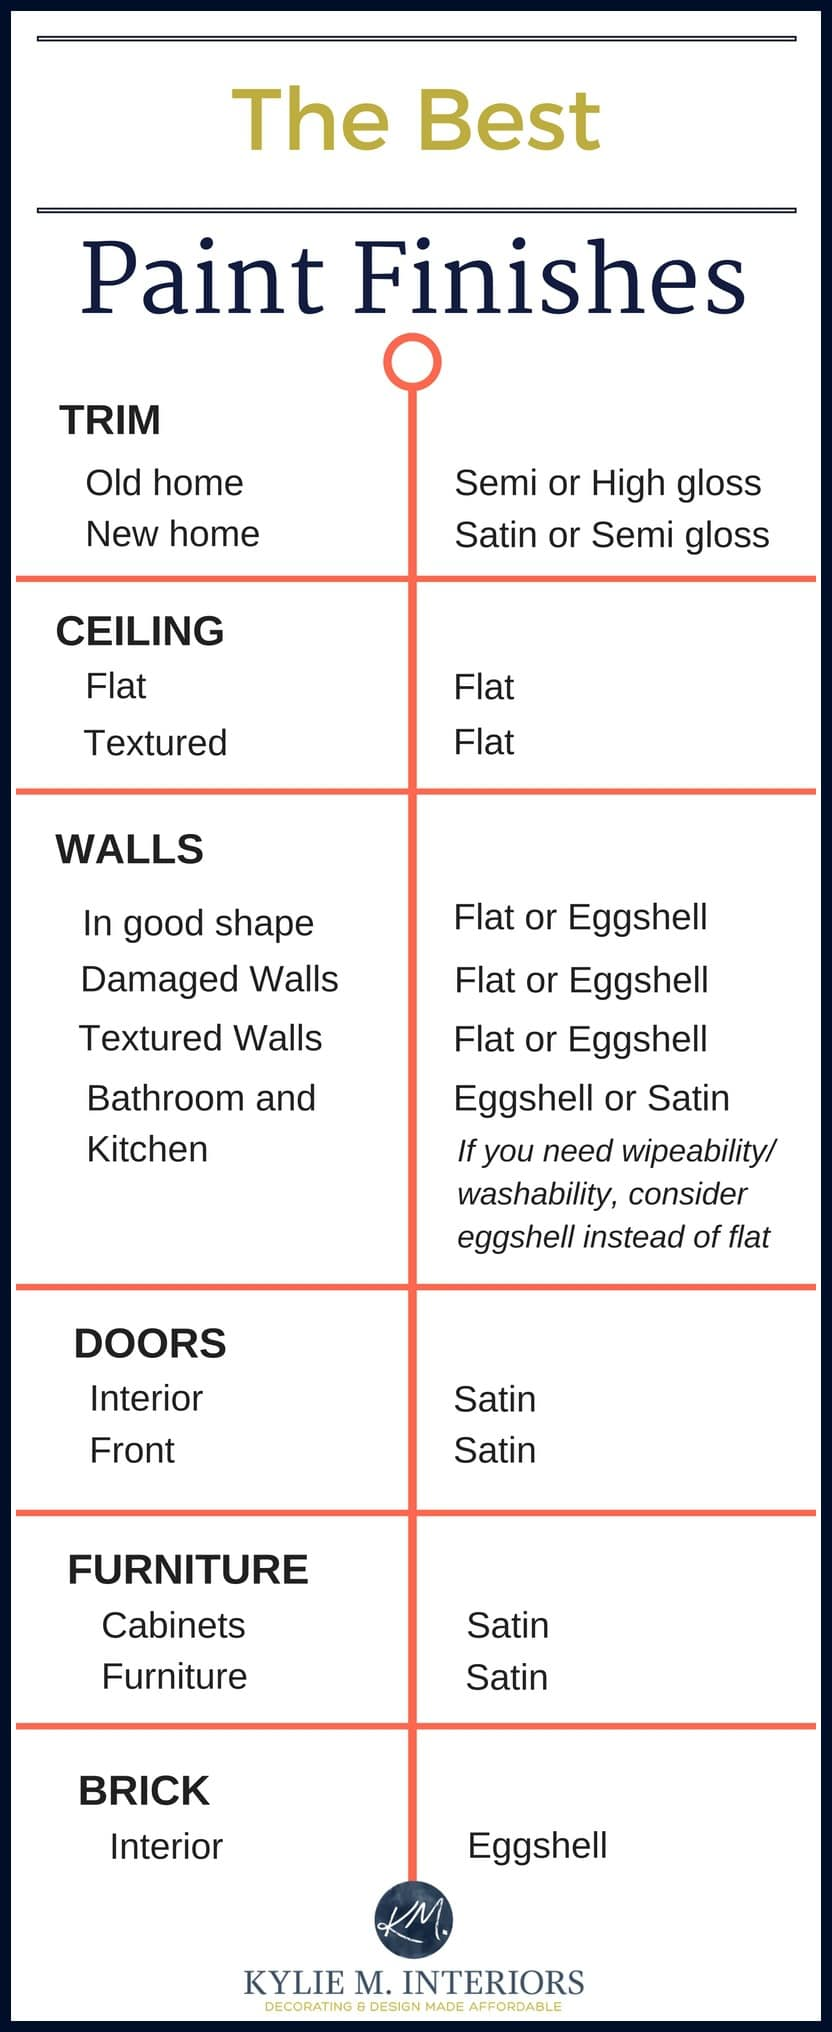 the best paint finish for walls ceilings trims doors and more